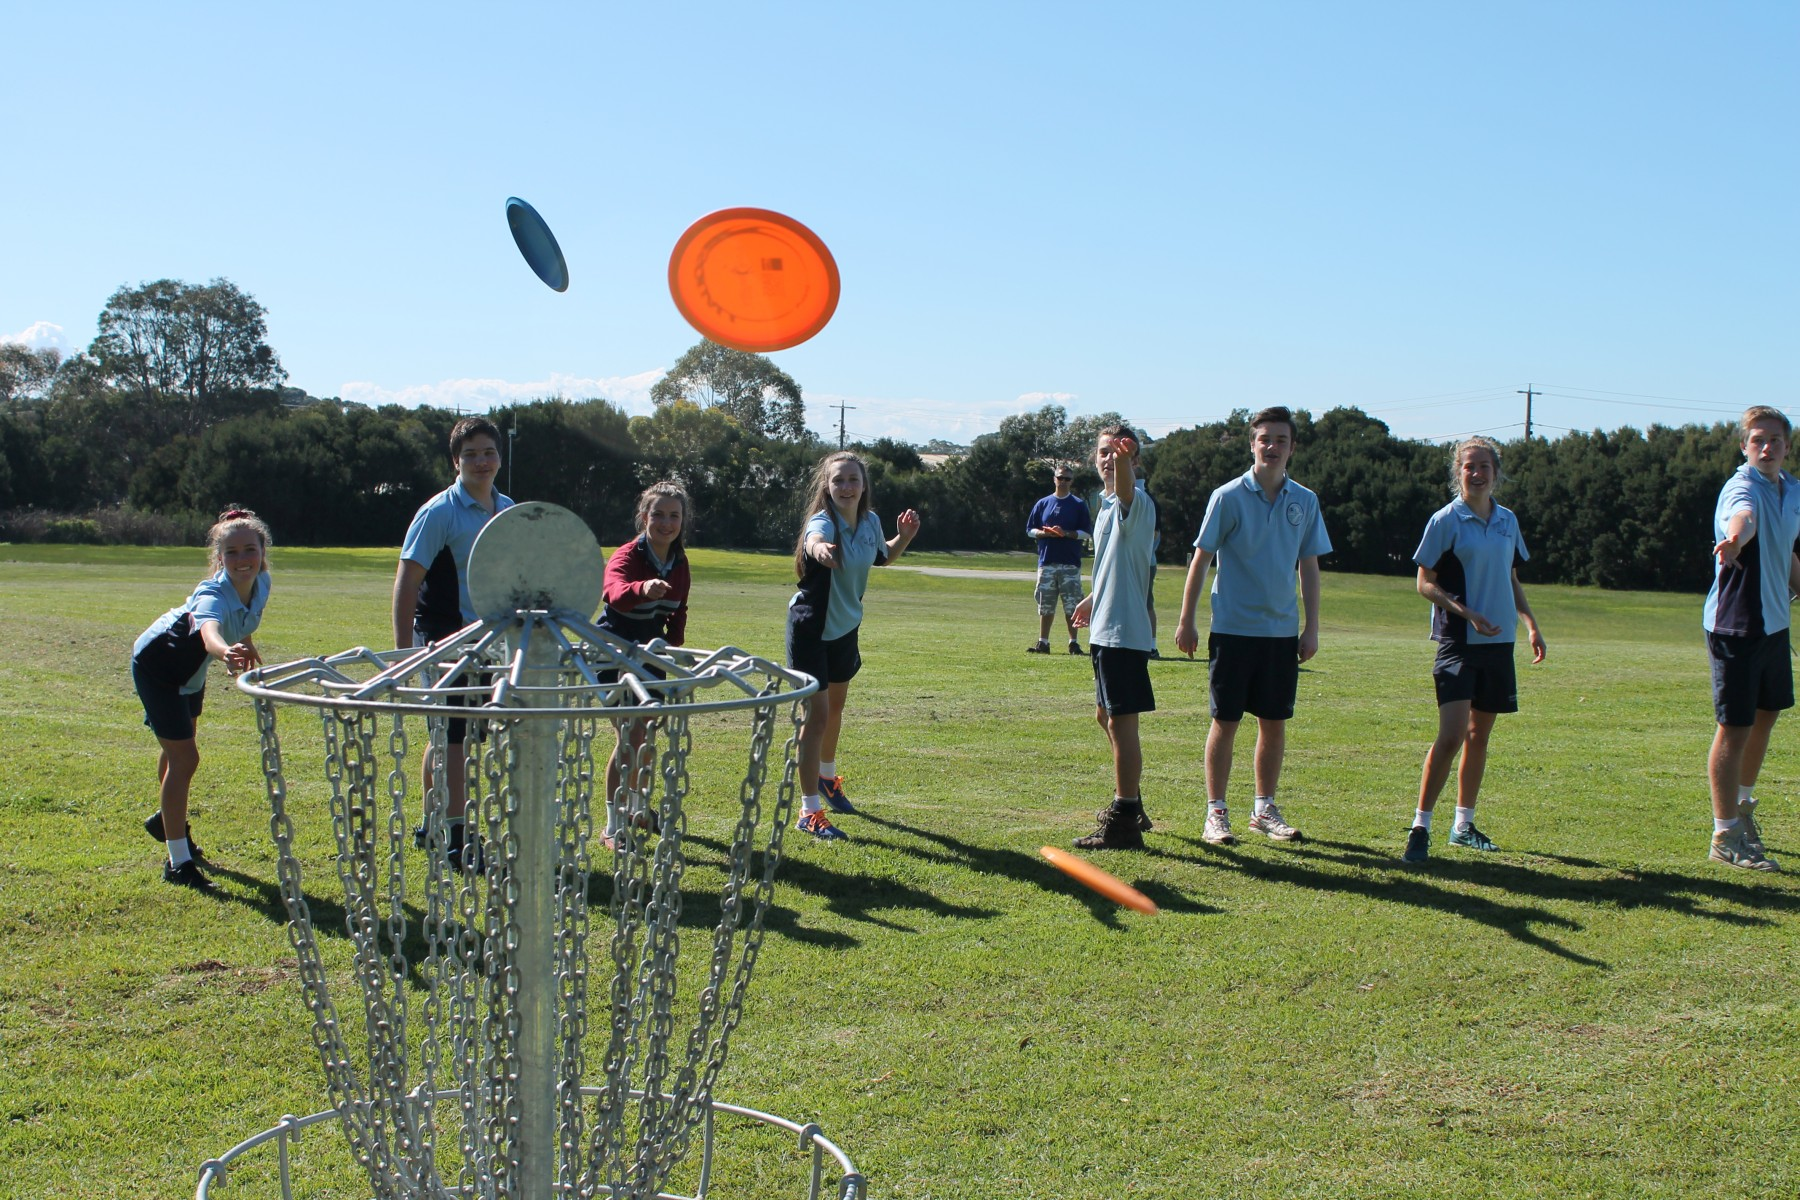 Newhaven College Year 9 students Annabelle Townsend, Apollo Christos, Ruby Hibbins, Brittany Gonzales, Anthony Passarin, Sam Duncan, Olivia Hughes, Hayden Vincent have a go at playing Frisbee golf at the Blue Gum Reserve Frisbee Golf Course launch.